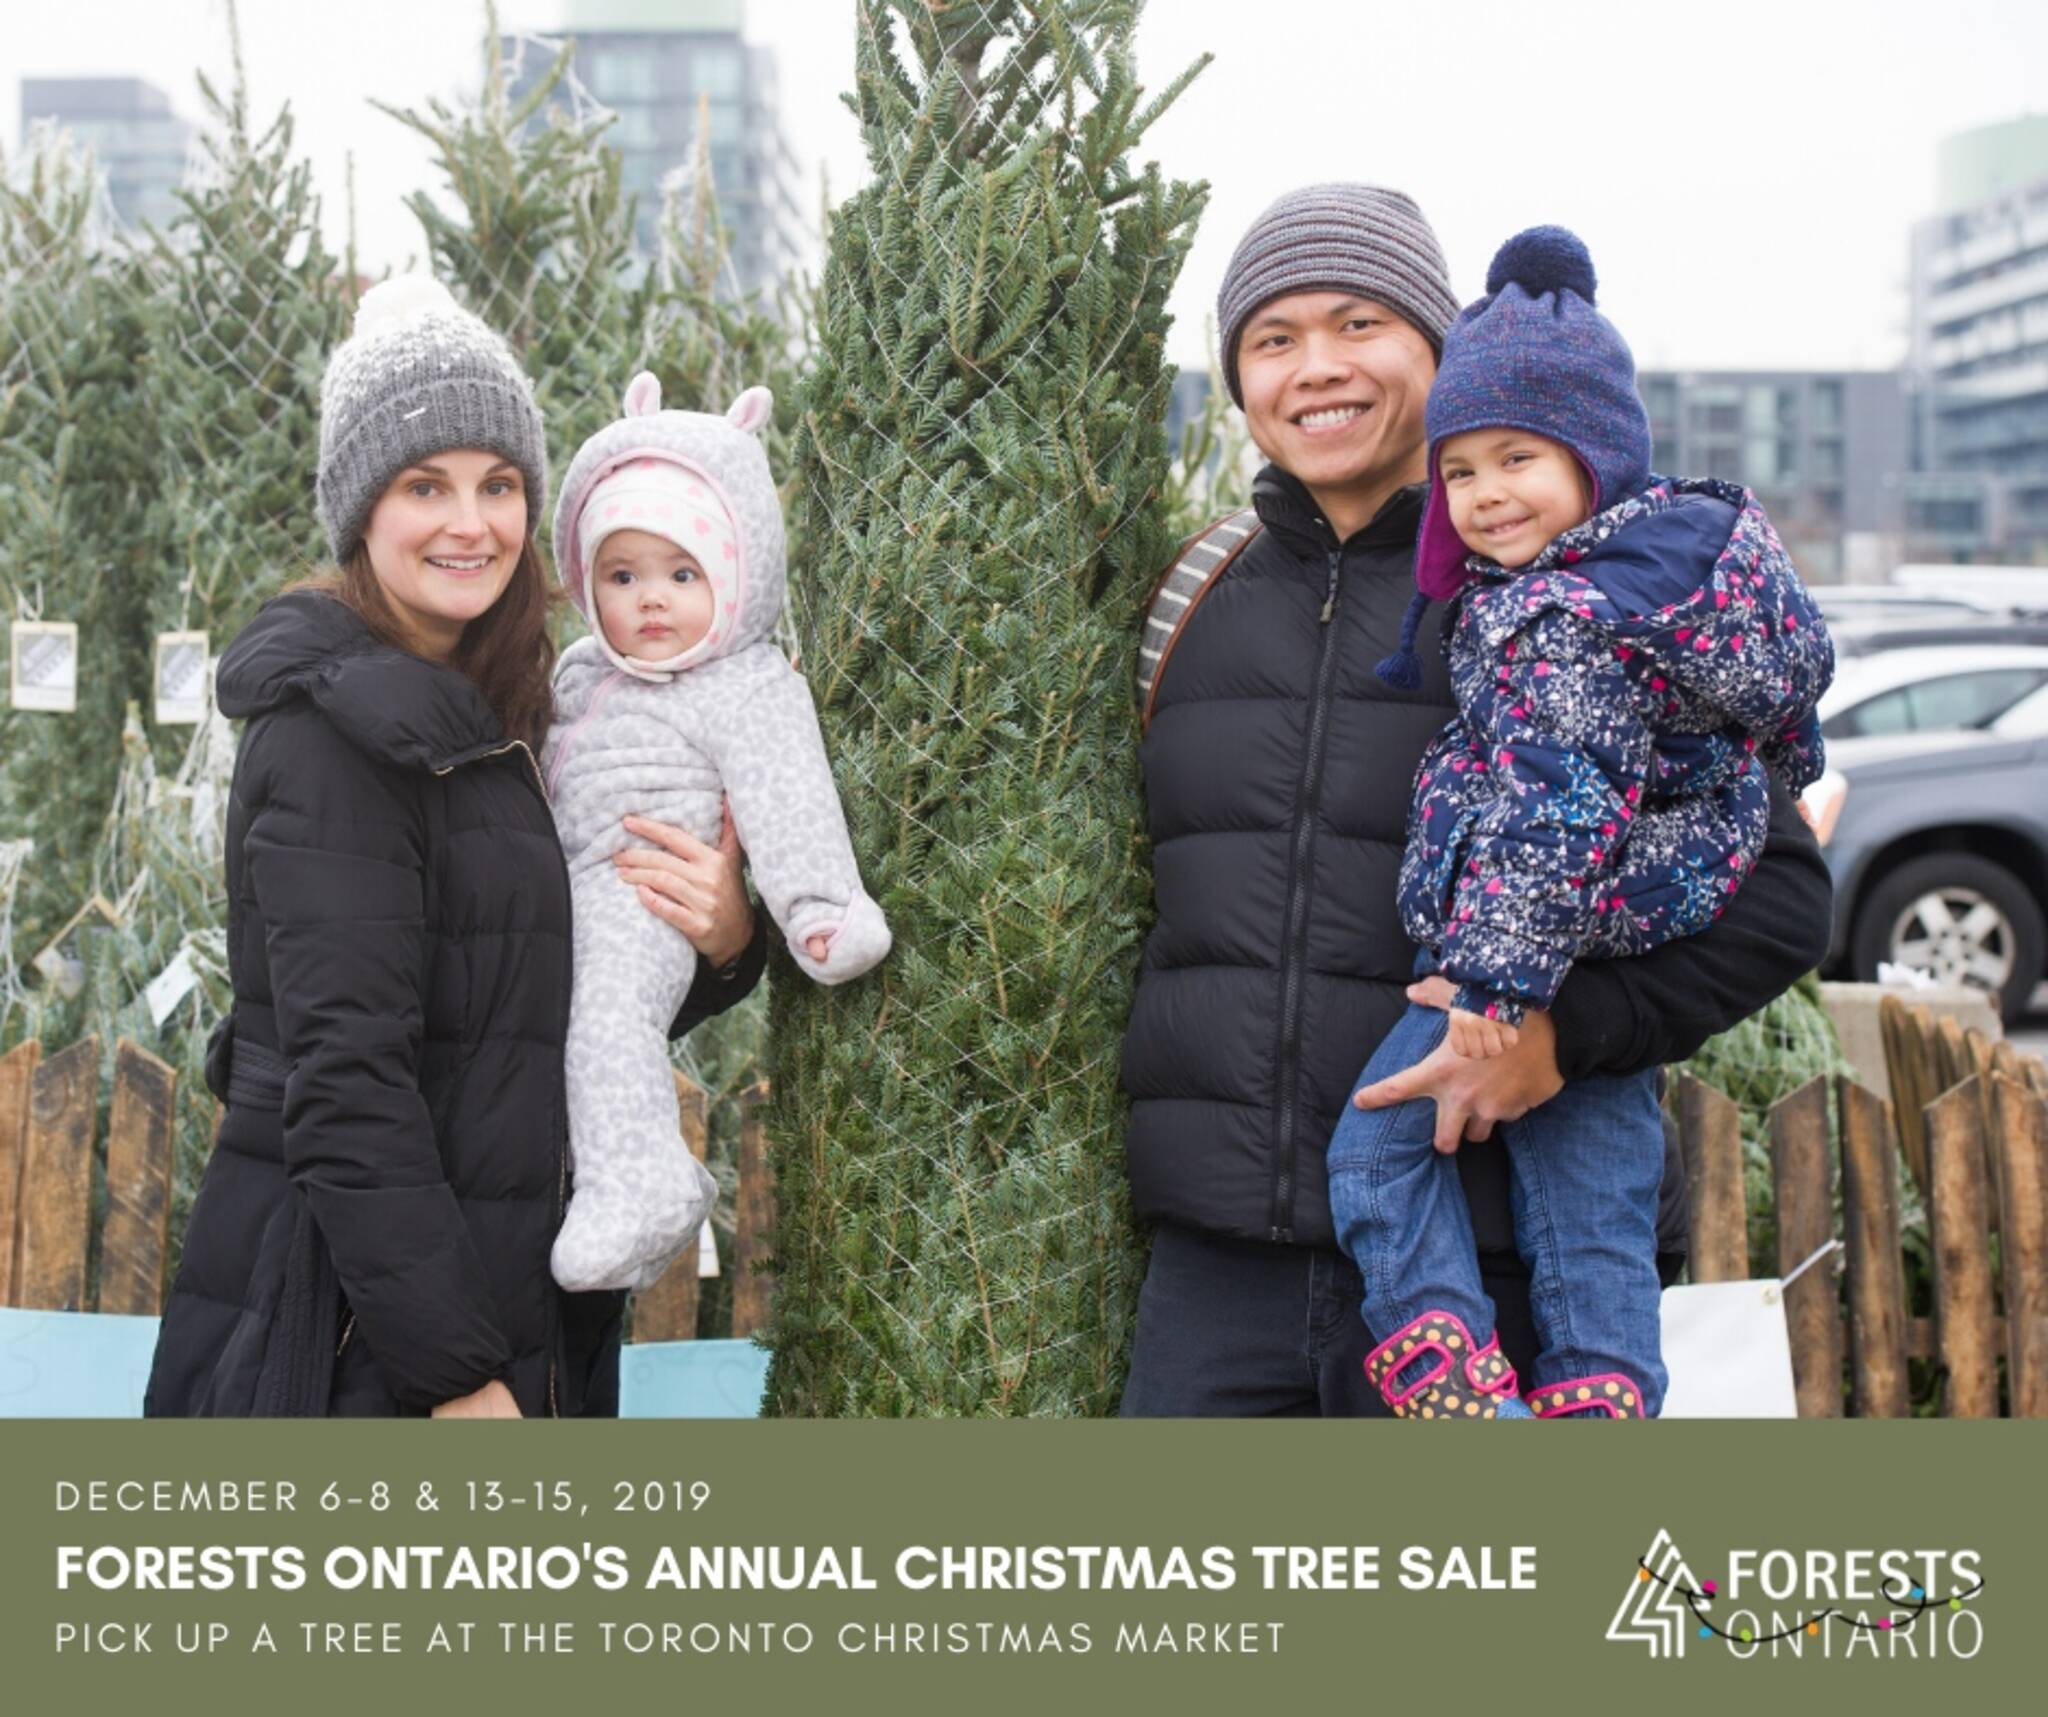 Christmas Trees Toronto: Forests Ontario's Annual Christmas Tree Sale @ The Toronto